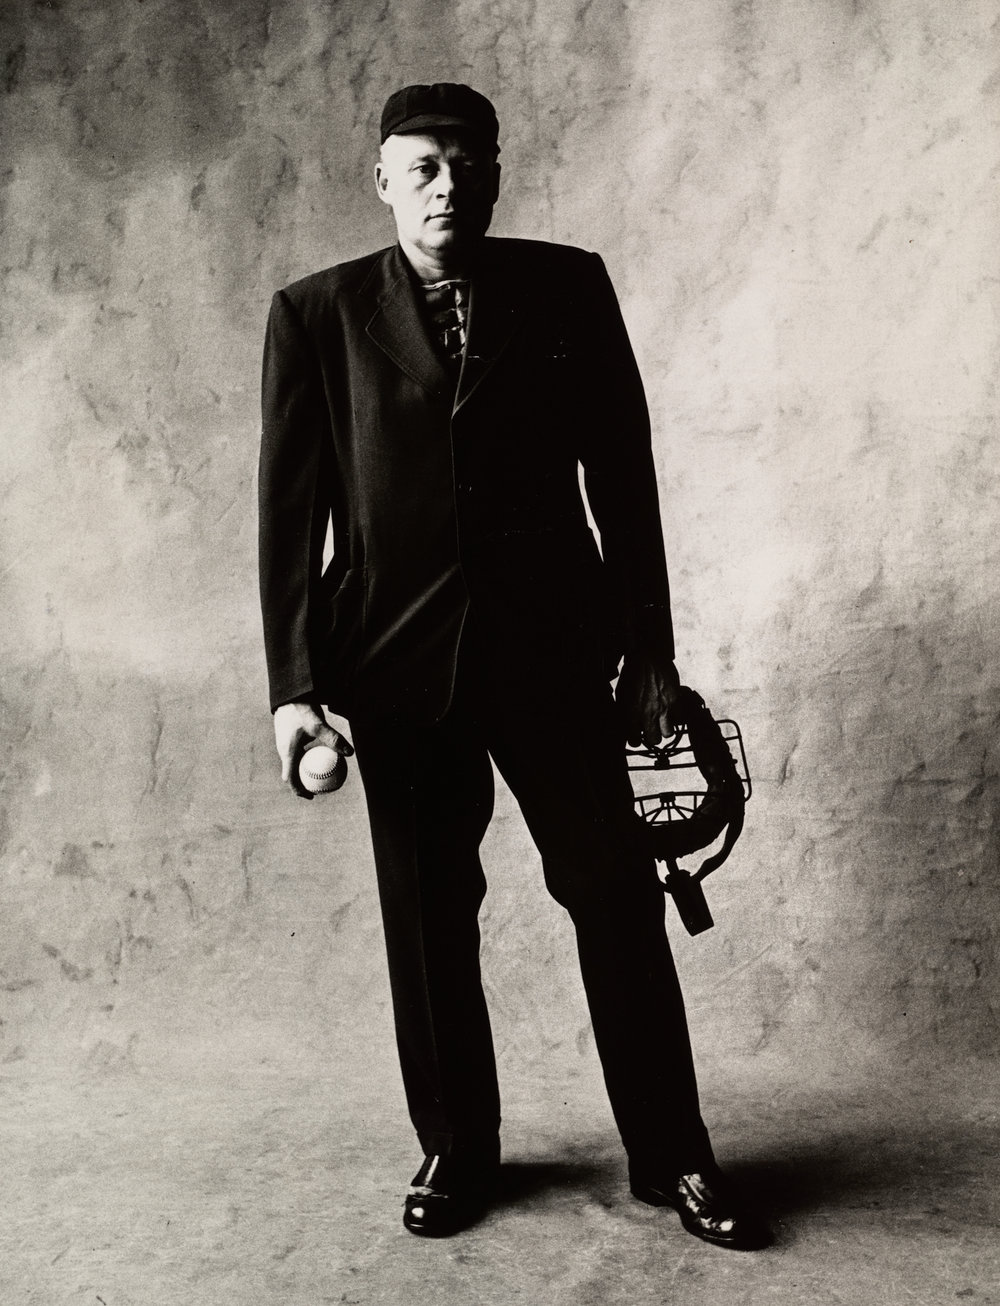 Umpire (A) , New York, 1951 Gelatin silver print © The Irving Penn Foundation